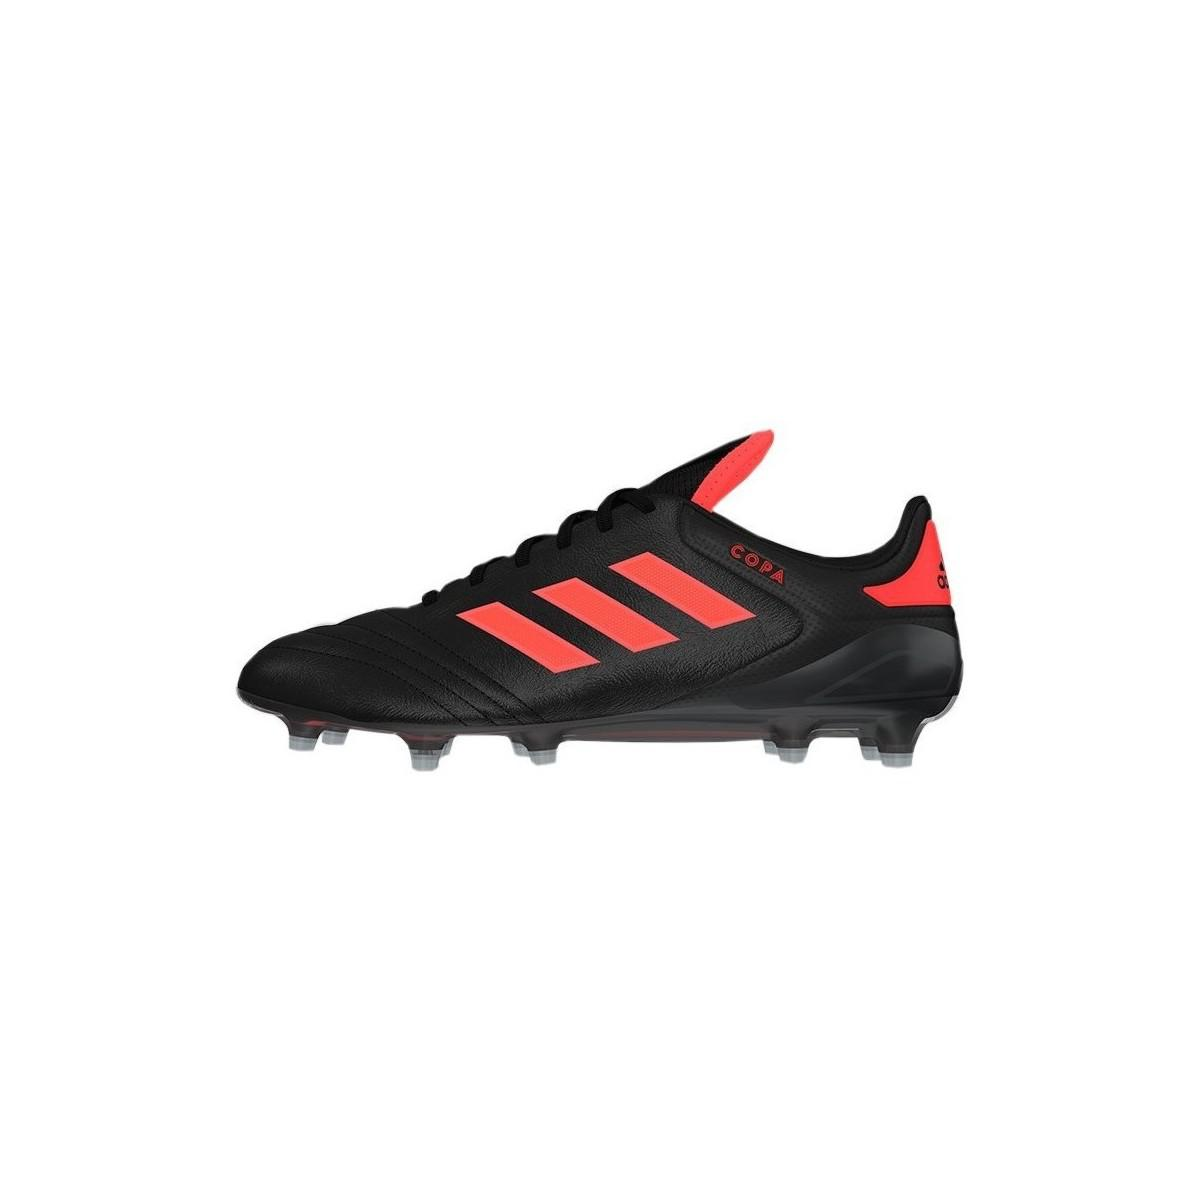 3cefcf73a6a7 Adidas Copa 171 Fg Men s Football Boots In Black in Black for Men - Lyst